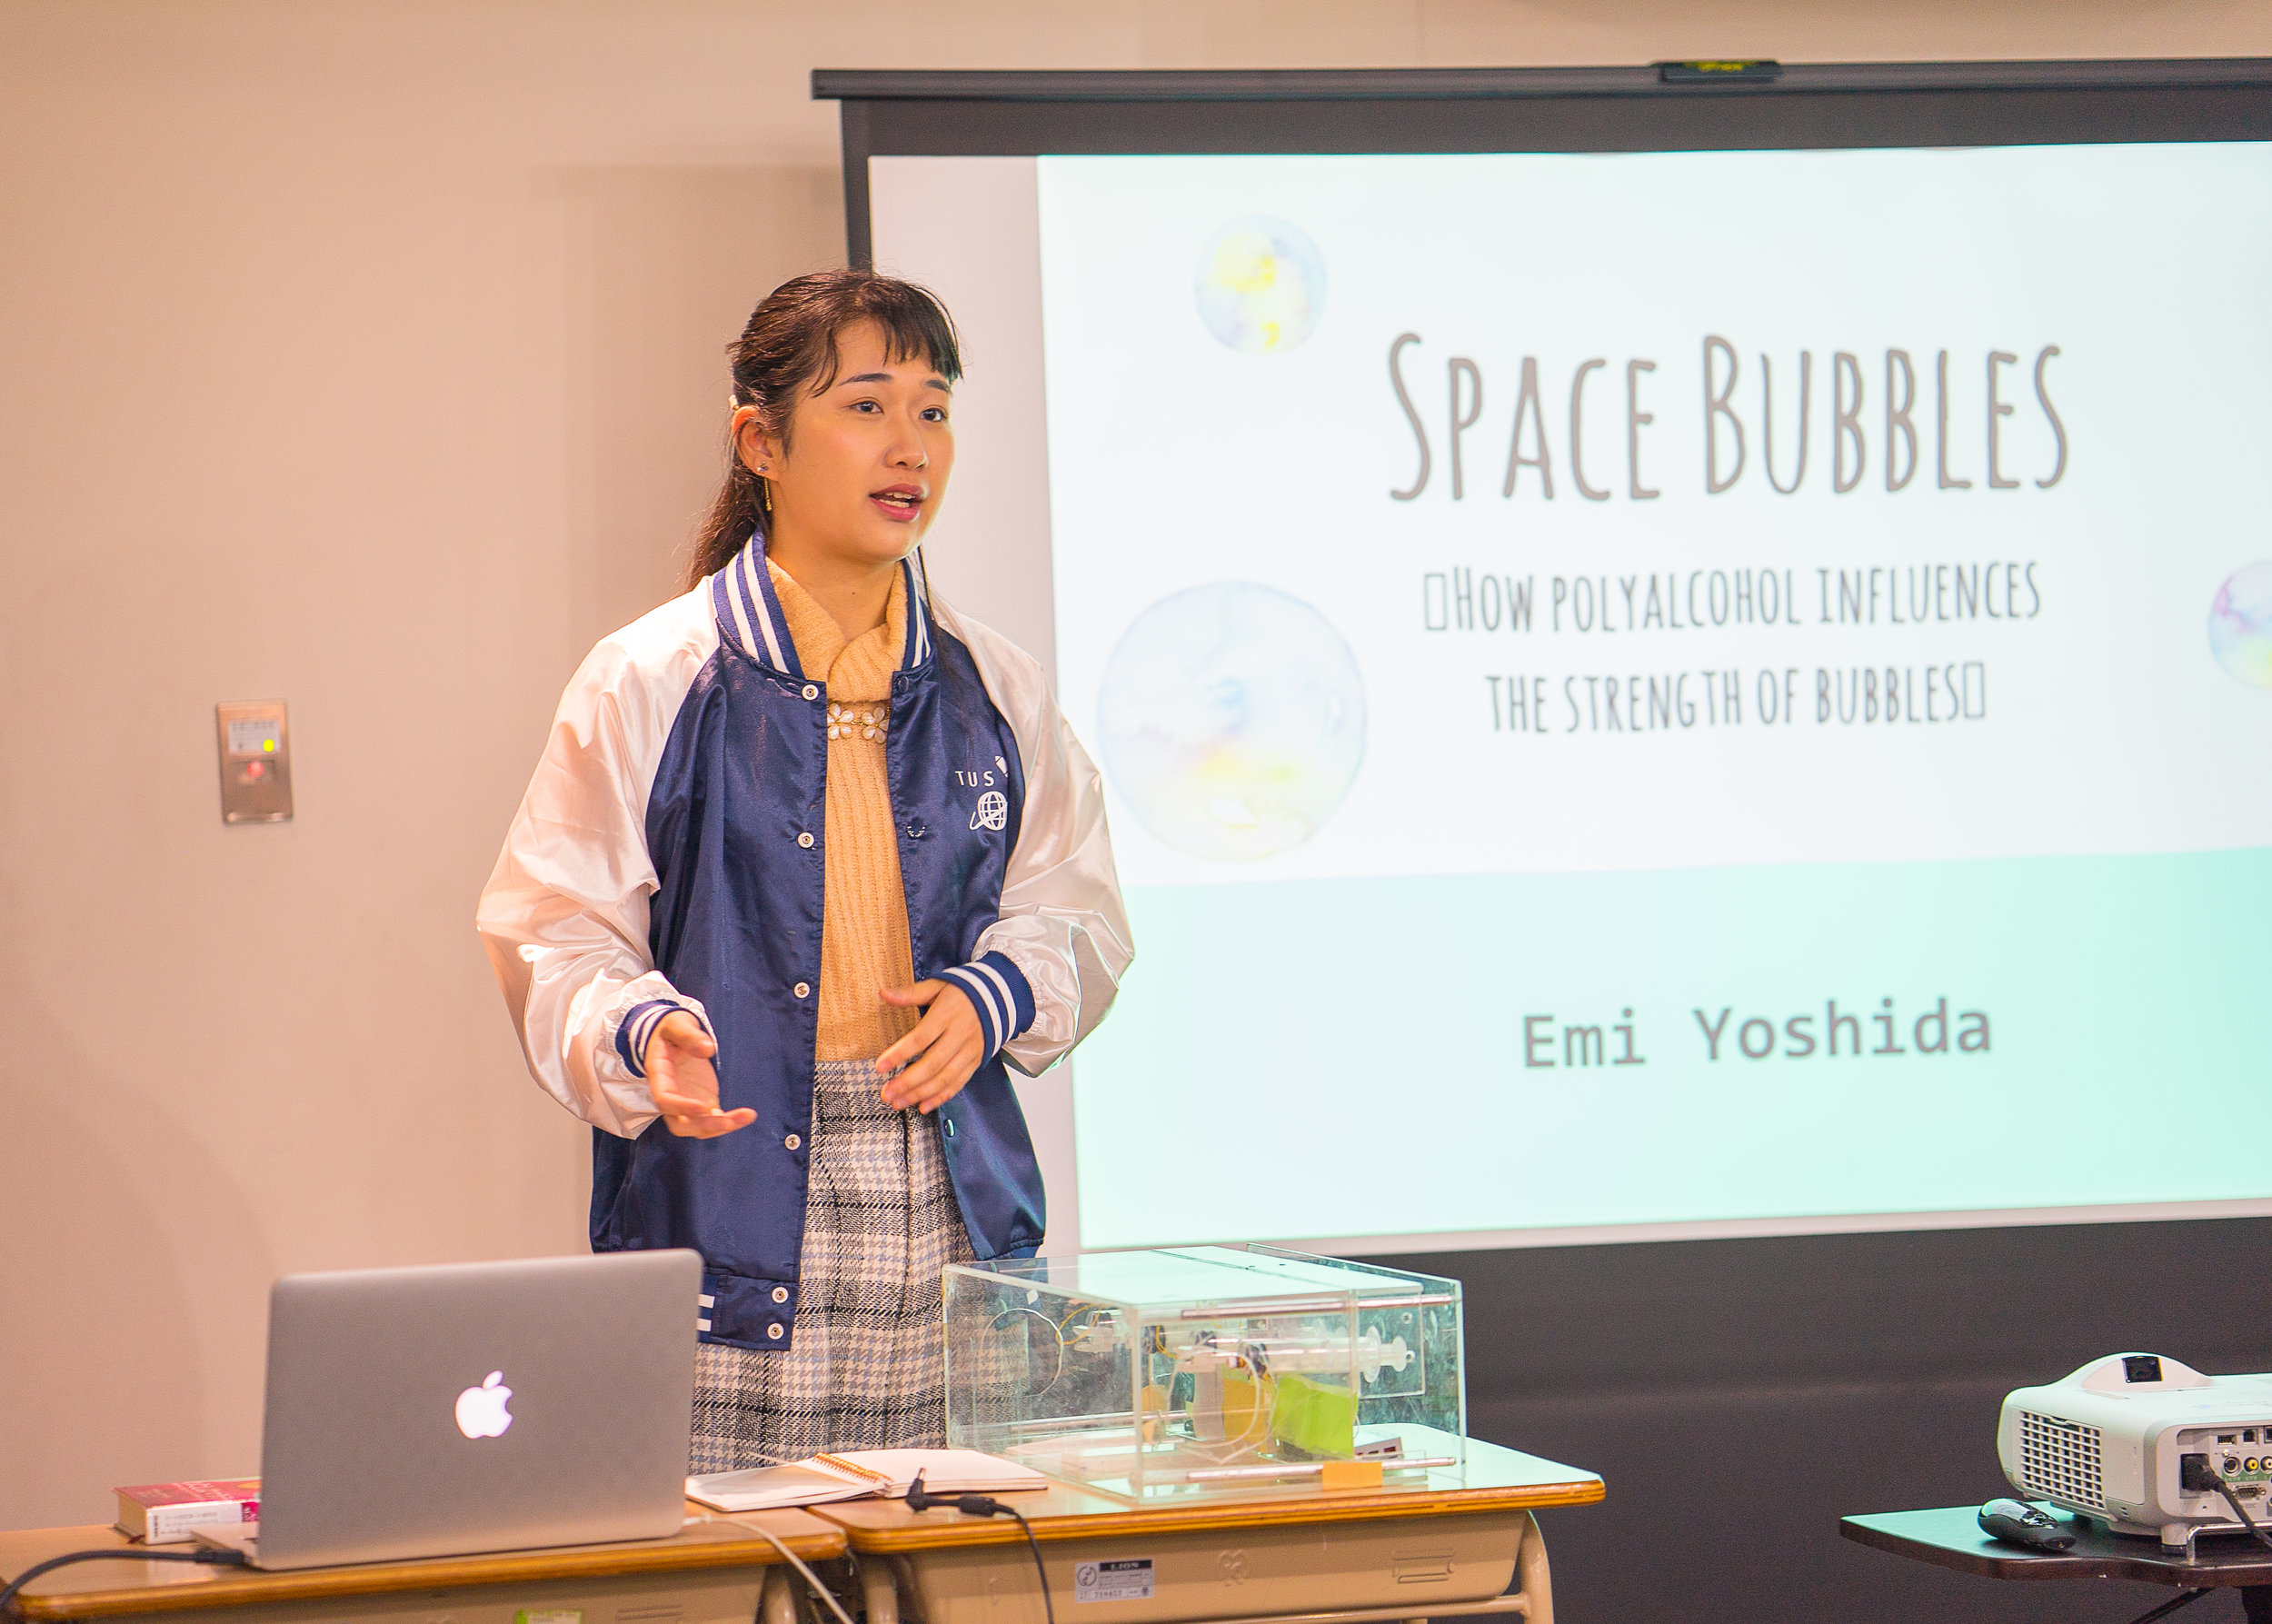 Emiko presents findings from her team's Space Bubbles experiment. (Courtesy of Amarachi Nwosu / Malala Fund)